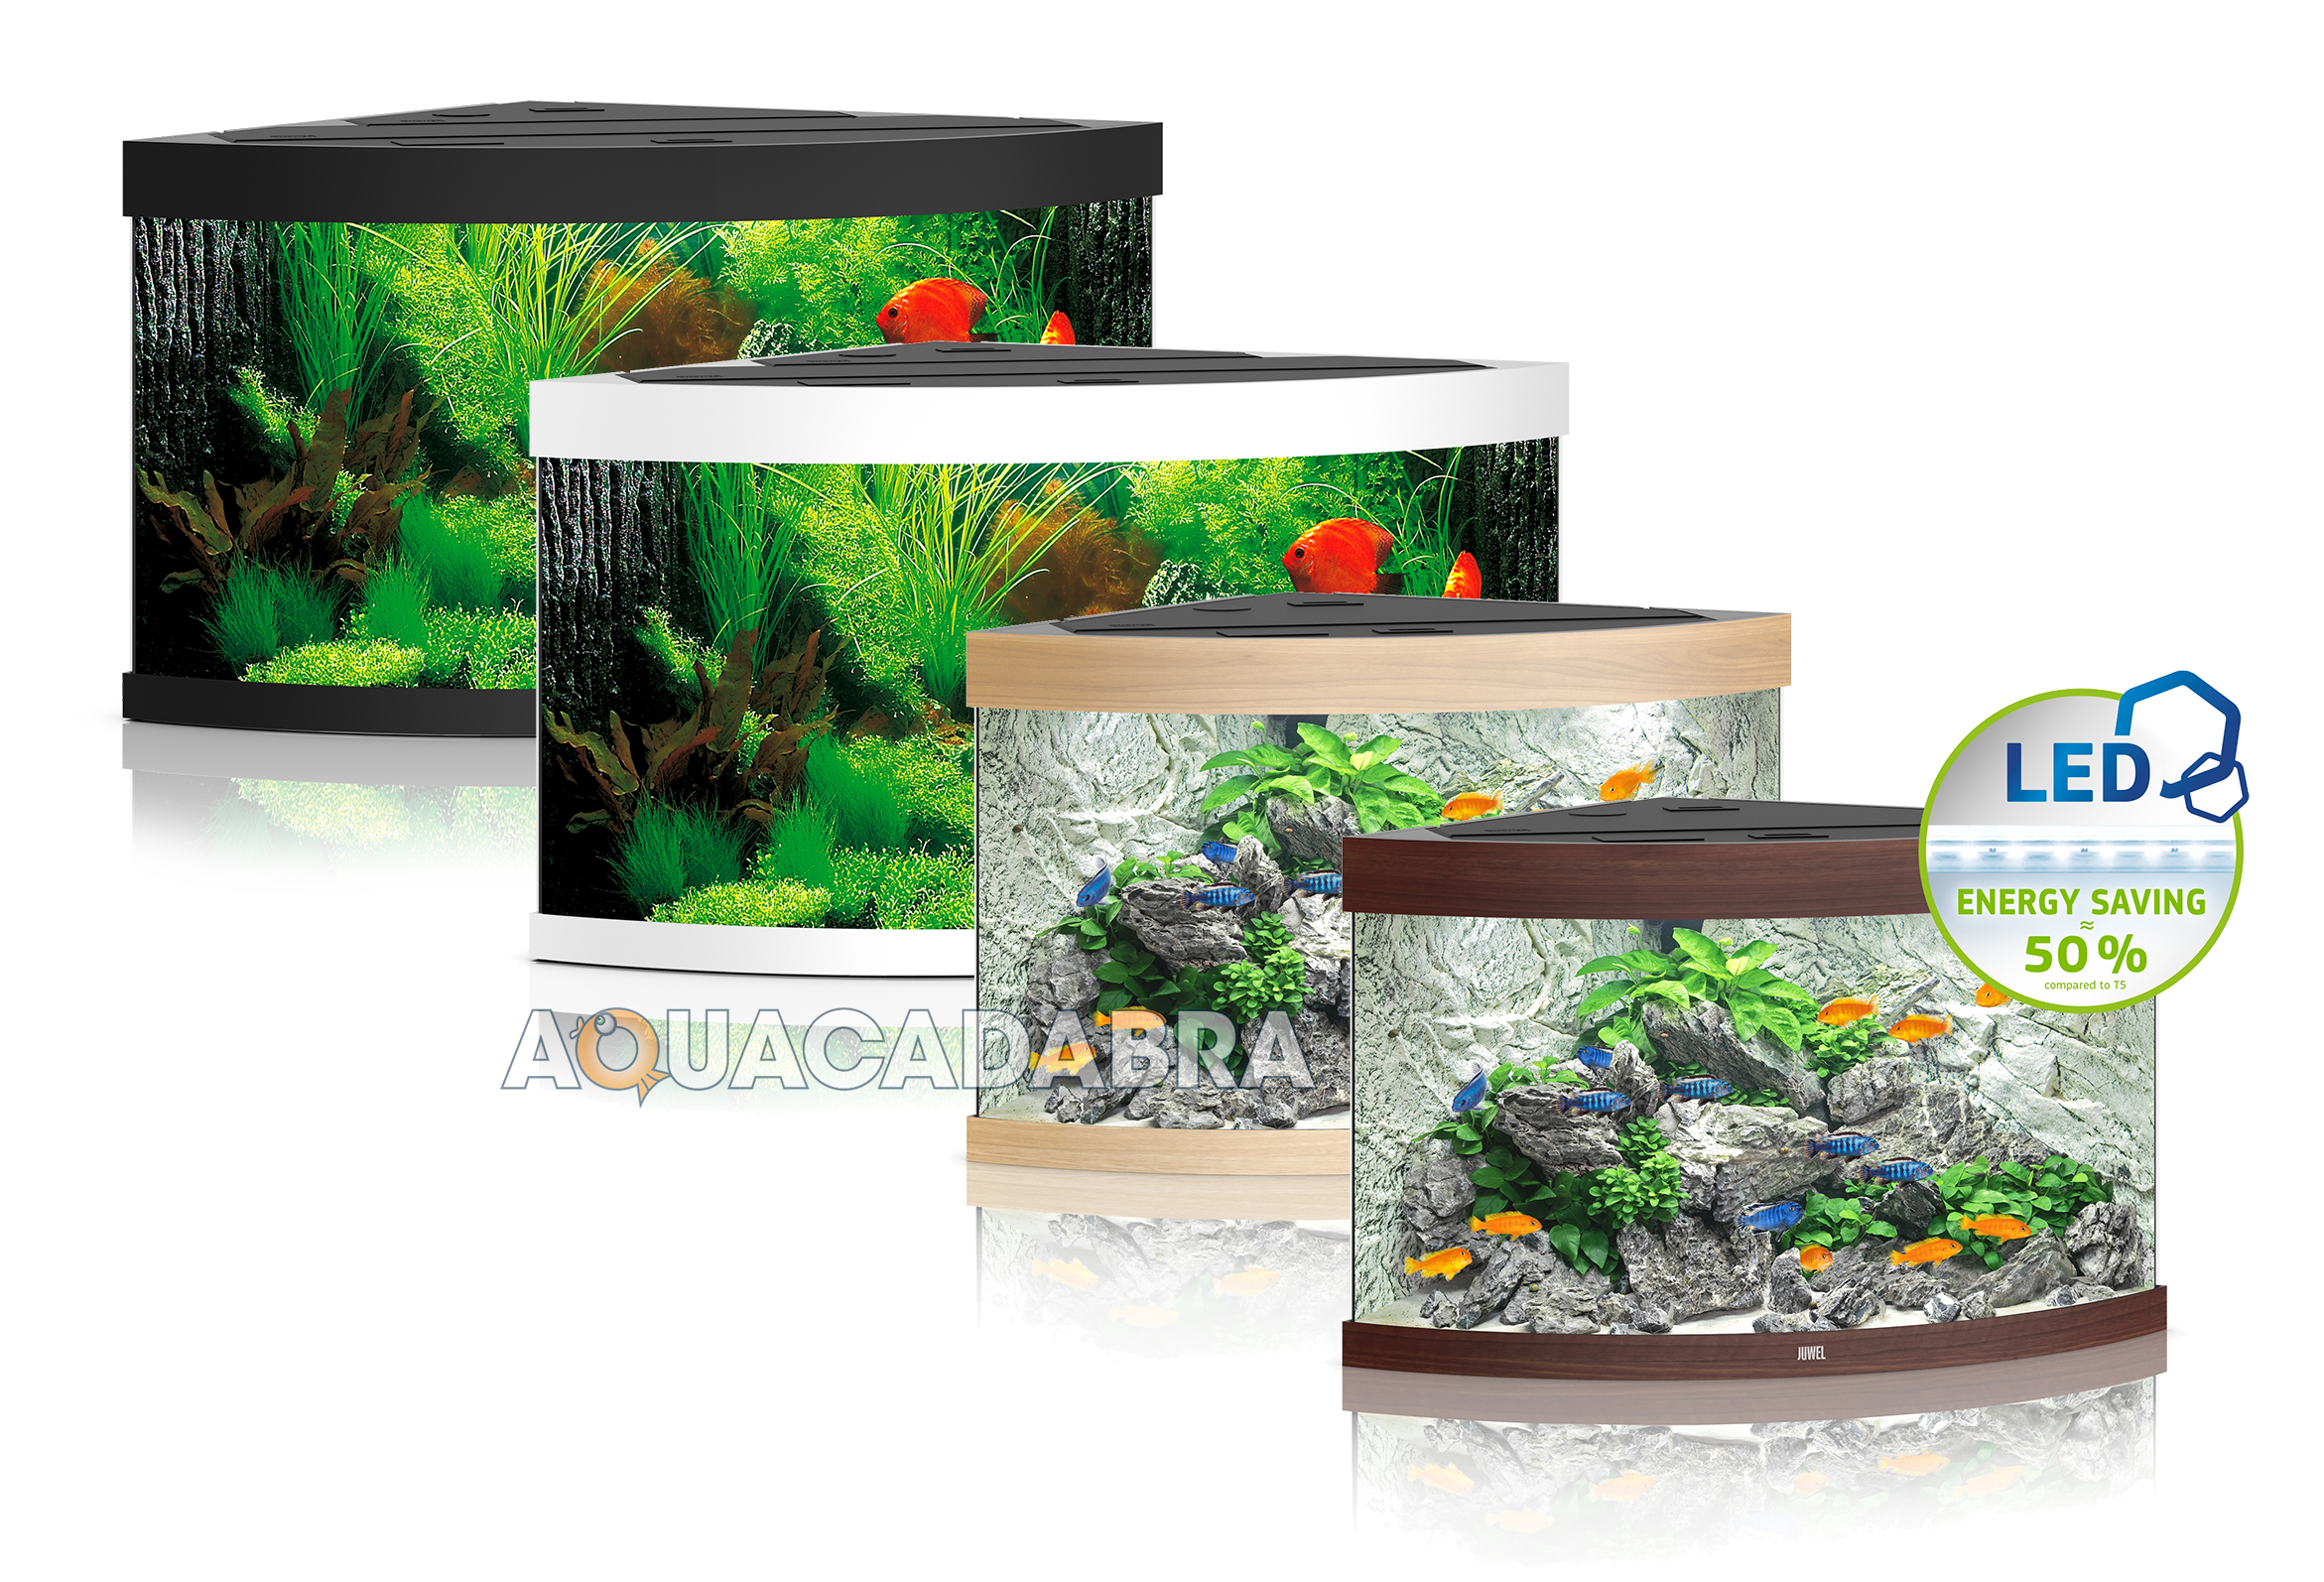 Juwel Led Aquariums Rio Lido Trigon Vision Fish Tanks